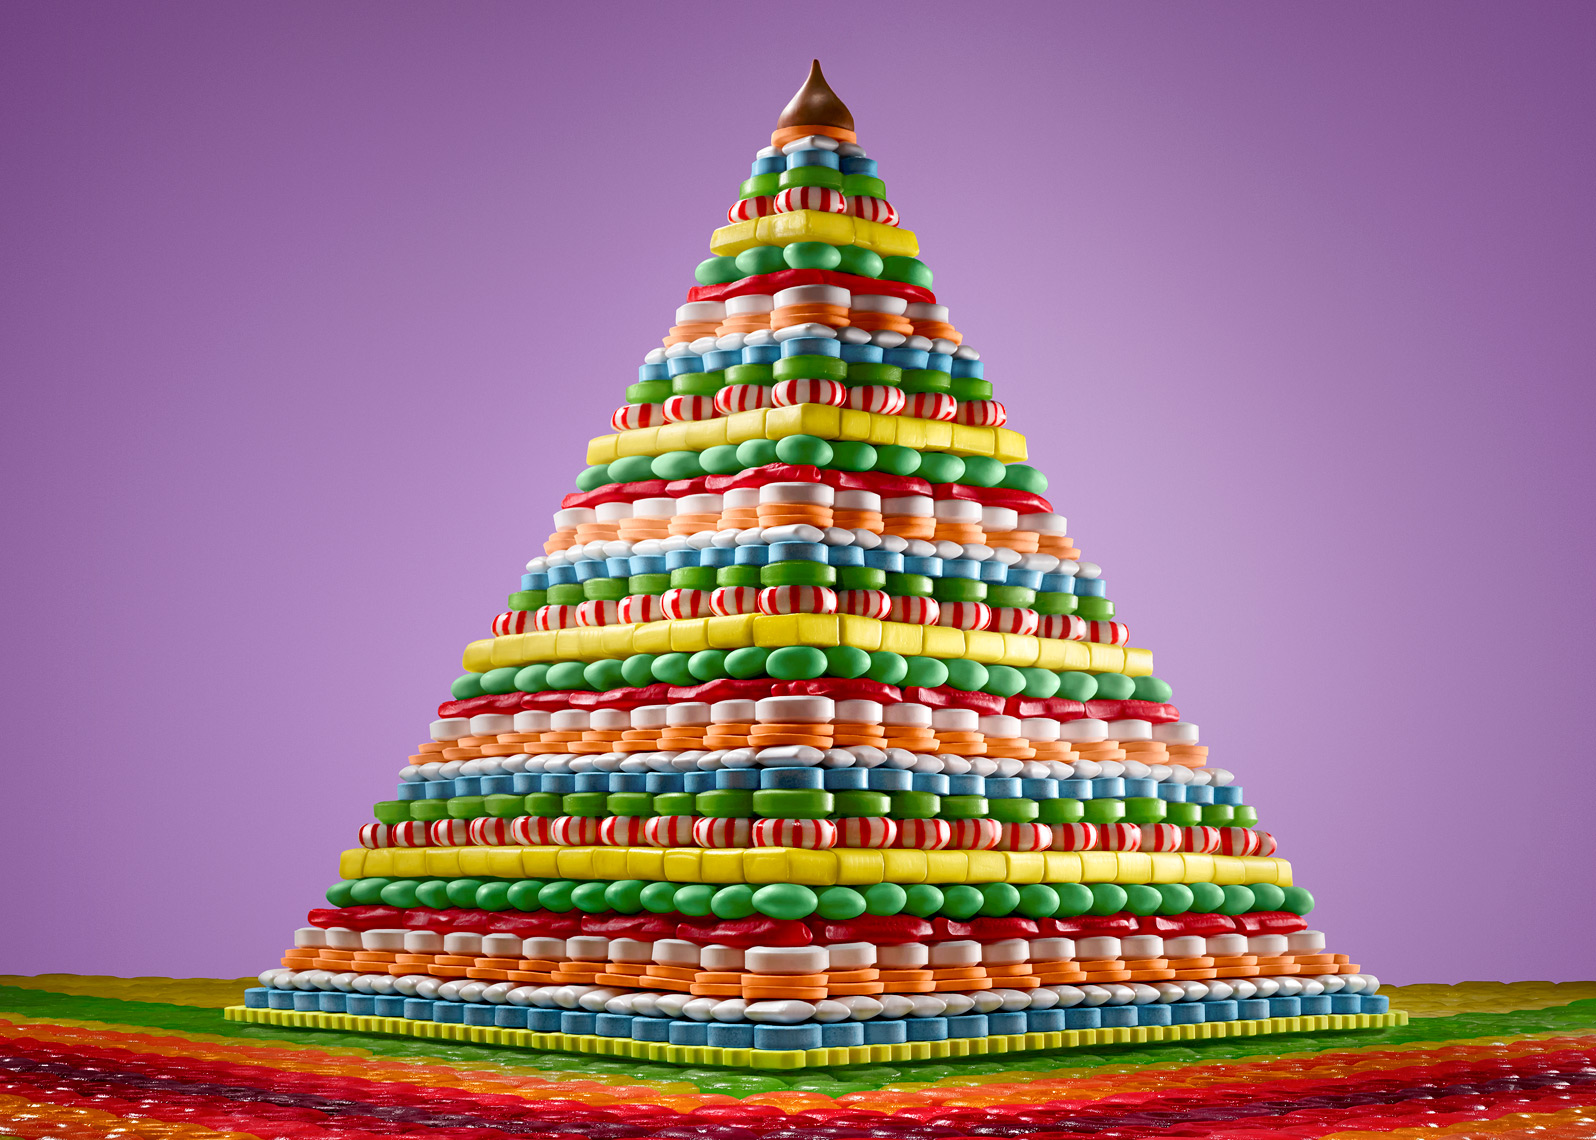 candy_pyramid_web